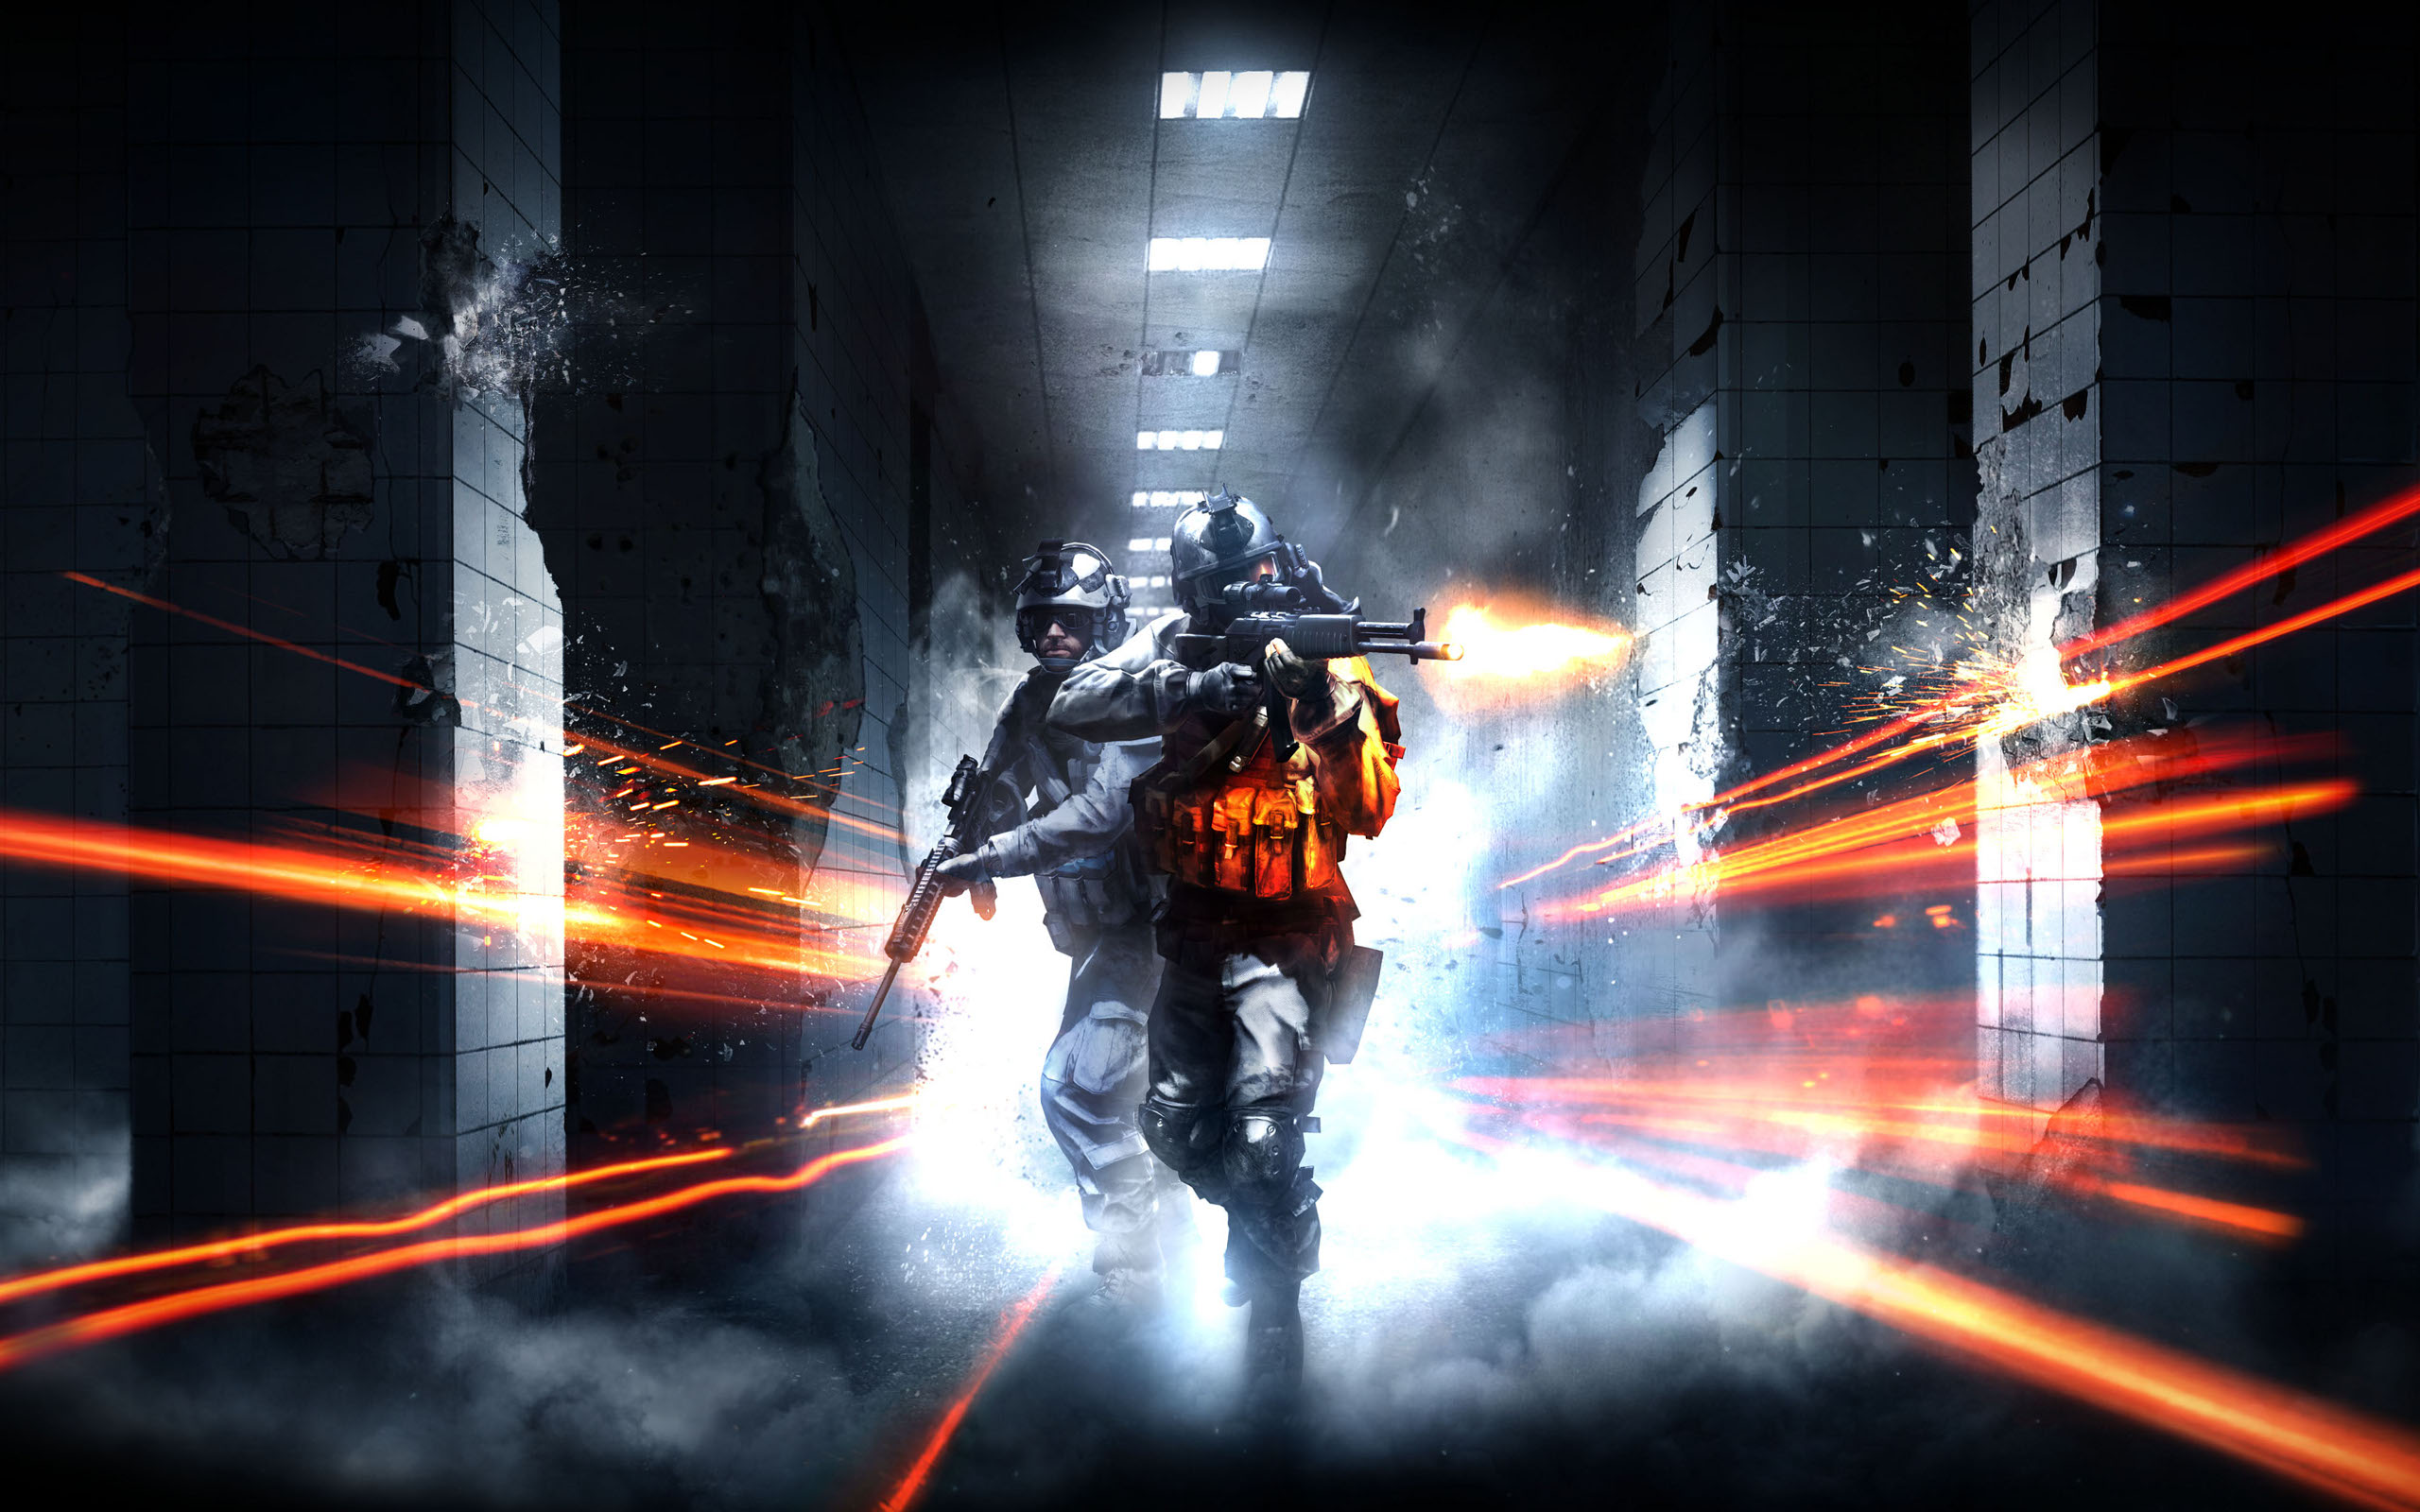 battlefield 3 full hd wallpaper and background image | 2560x1600